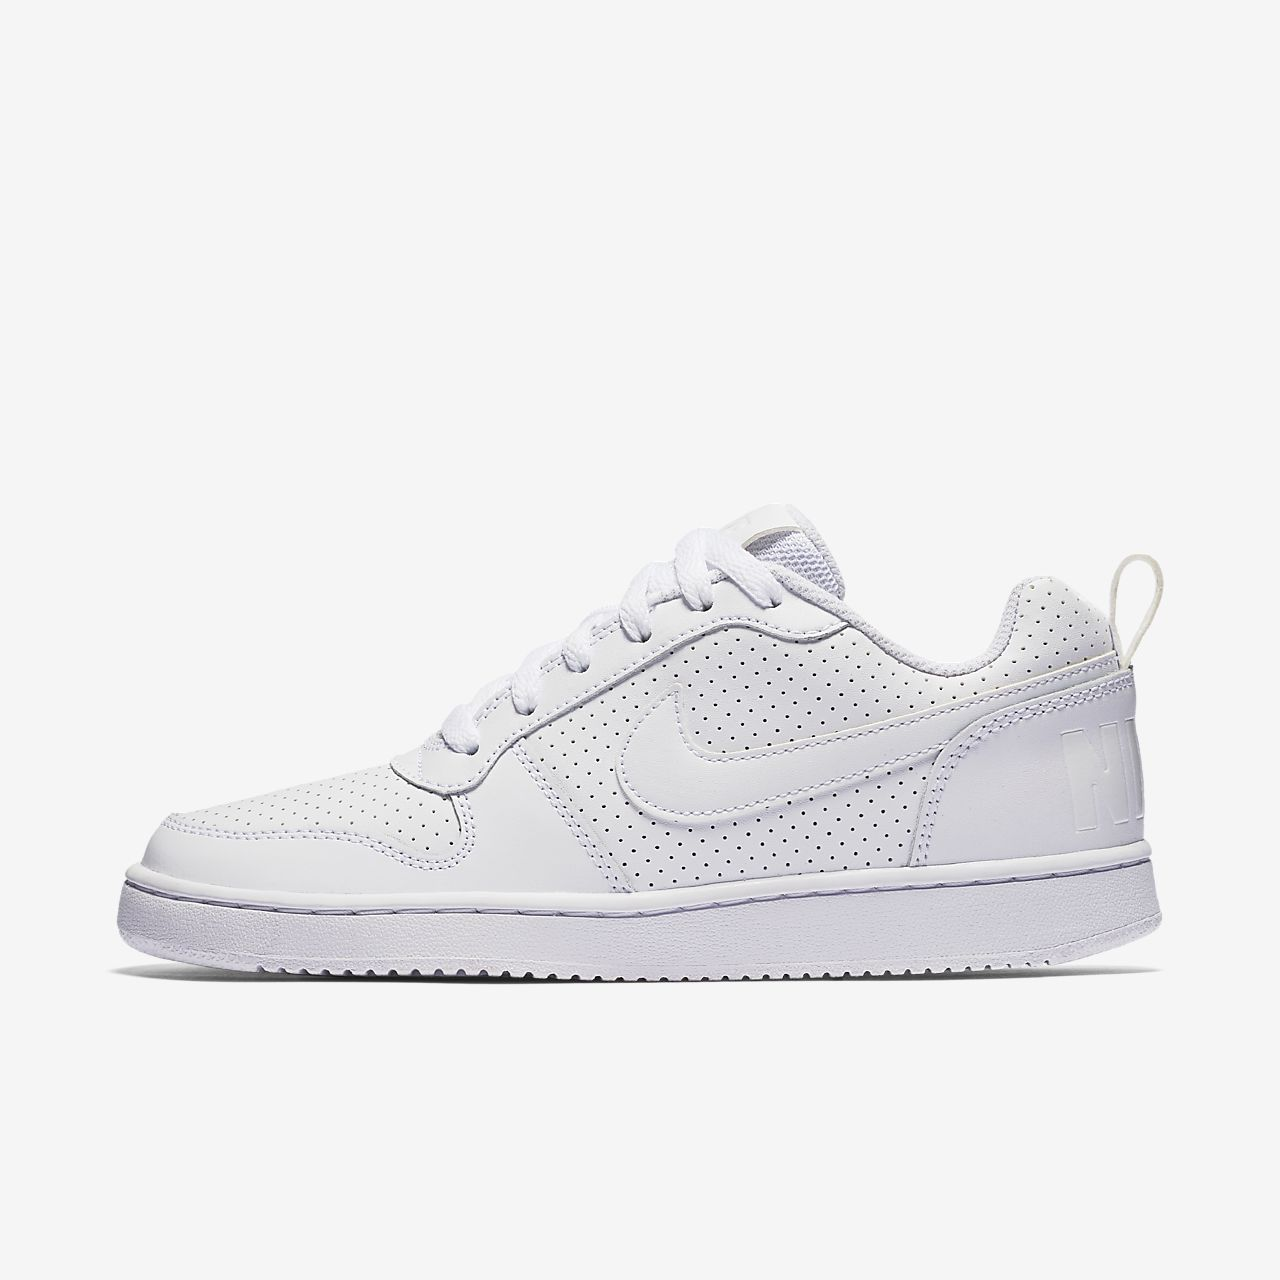 042d77fb Calzado para mujer Nike Court Borough Low. Nike.com MX